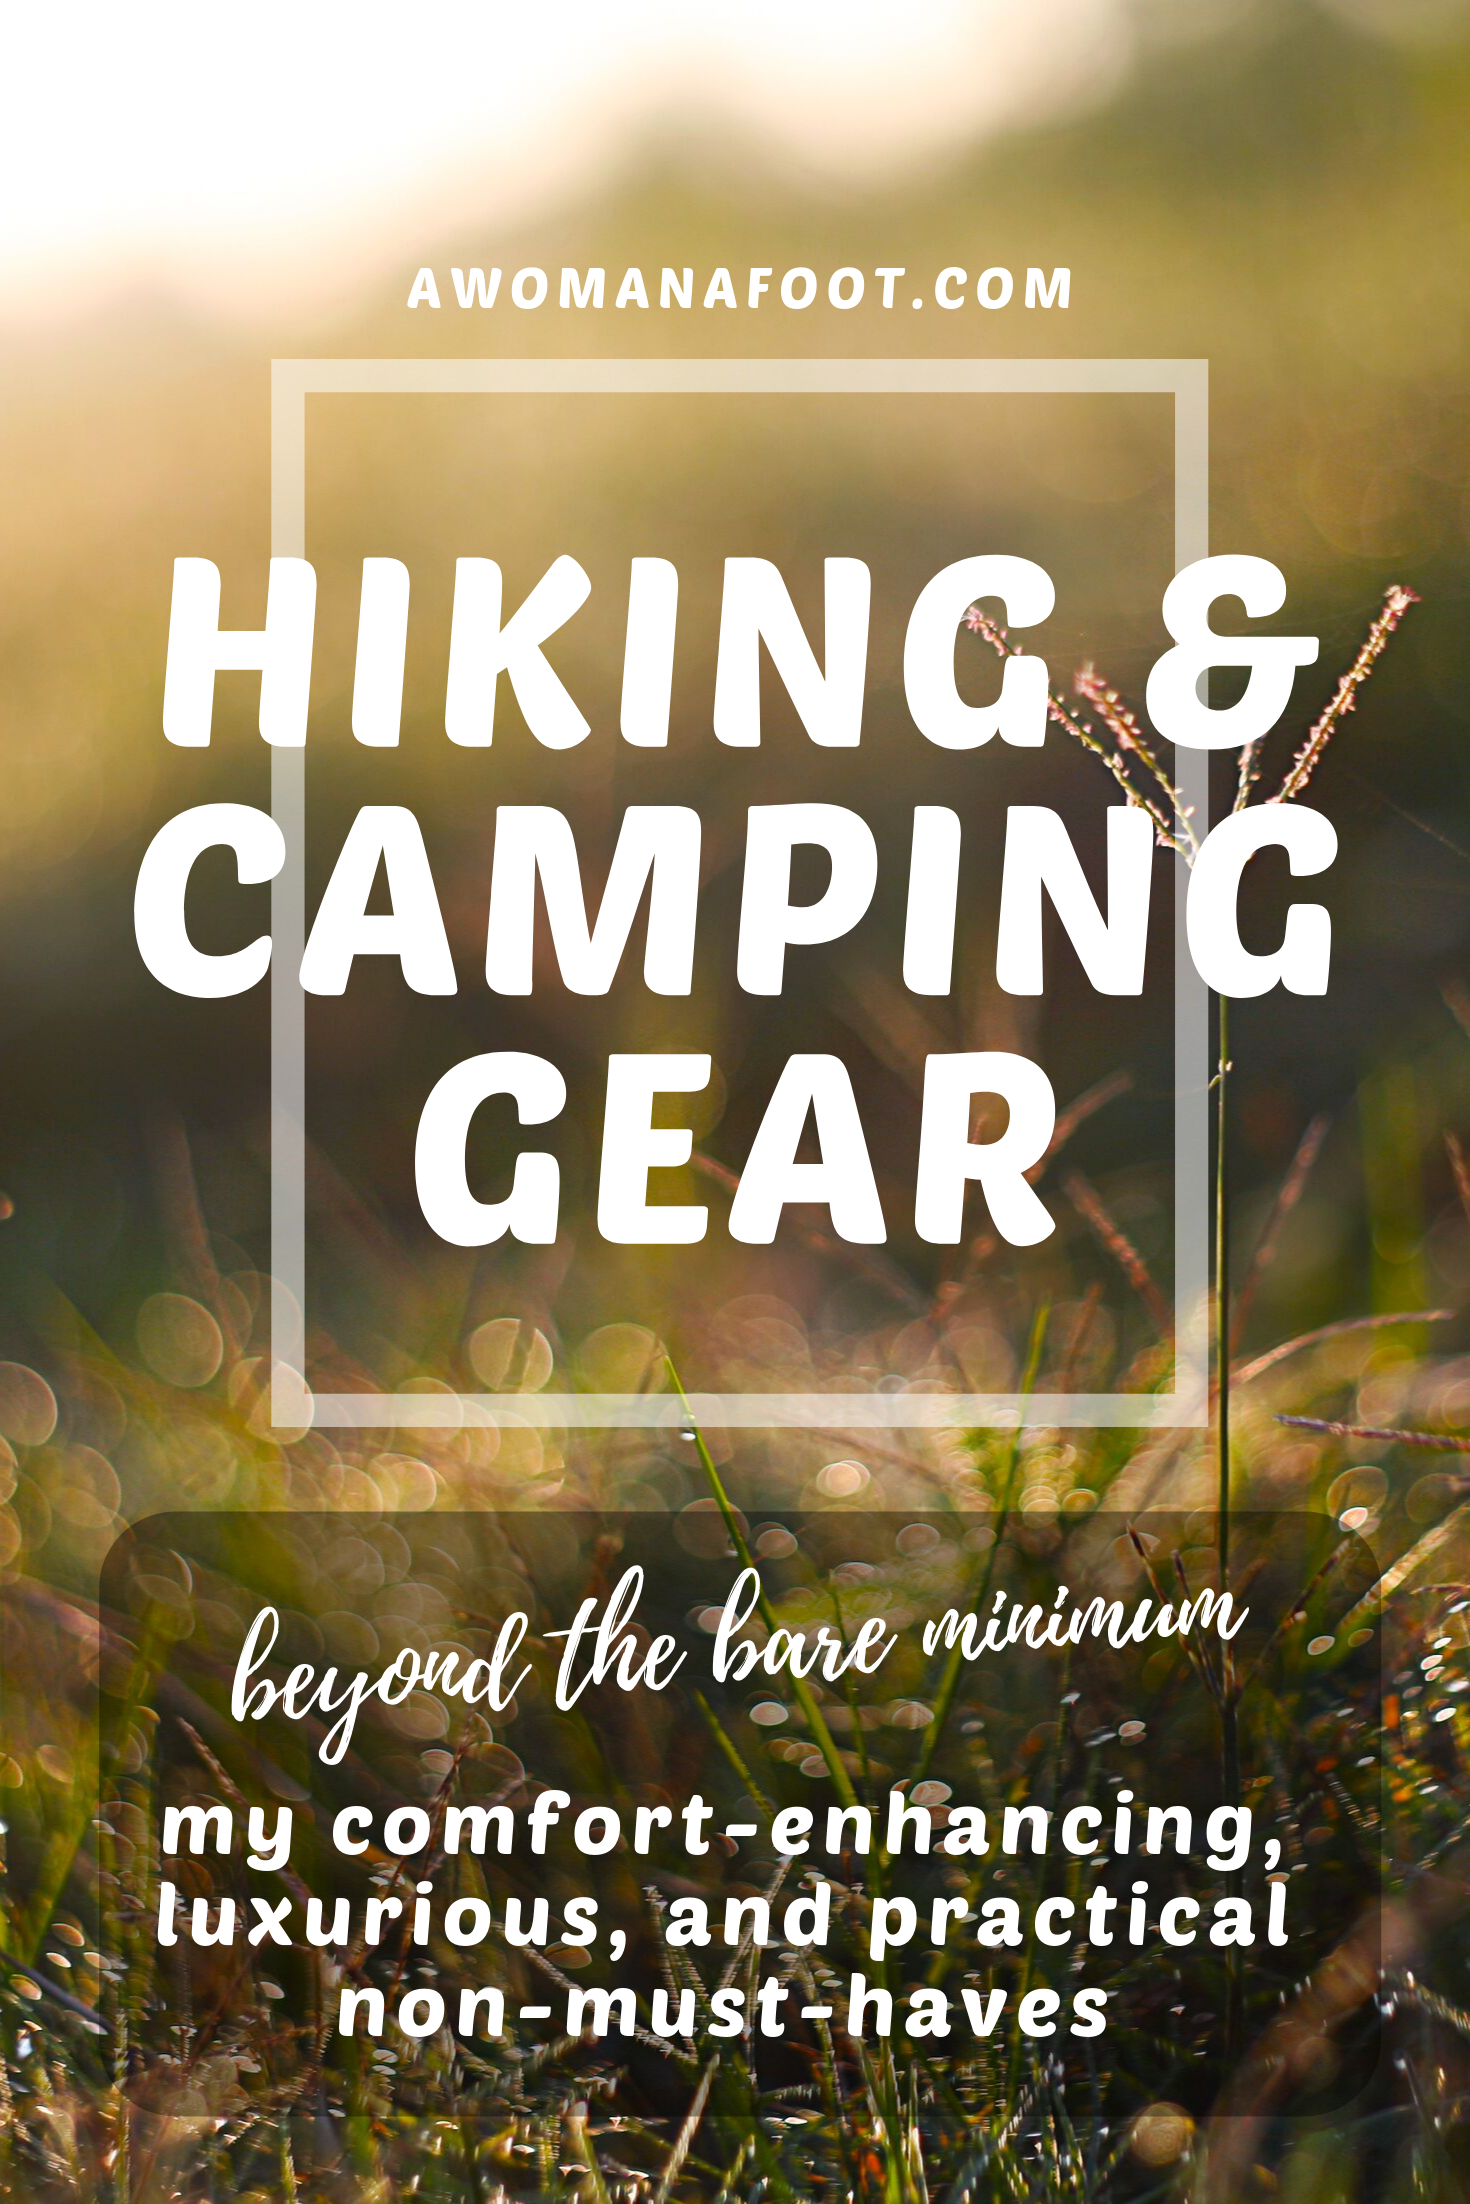 Moving beyond the bare necessities: hiking & camping gear enhancing my comfort, enjoyment, and safety while adventuring in the mountains! @ AWOMANAFOOT.COM | #Hiking #Camping #Gear #FemaleSoloHiker #HikingSolo #HikingGear #Backpacking | Great hiking gear and gadgets | #GiftIdeas #Outdoors | Hiking Comfort & Safety | What to pack for a hike | Women hiking & camping